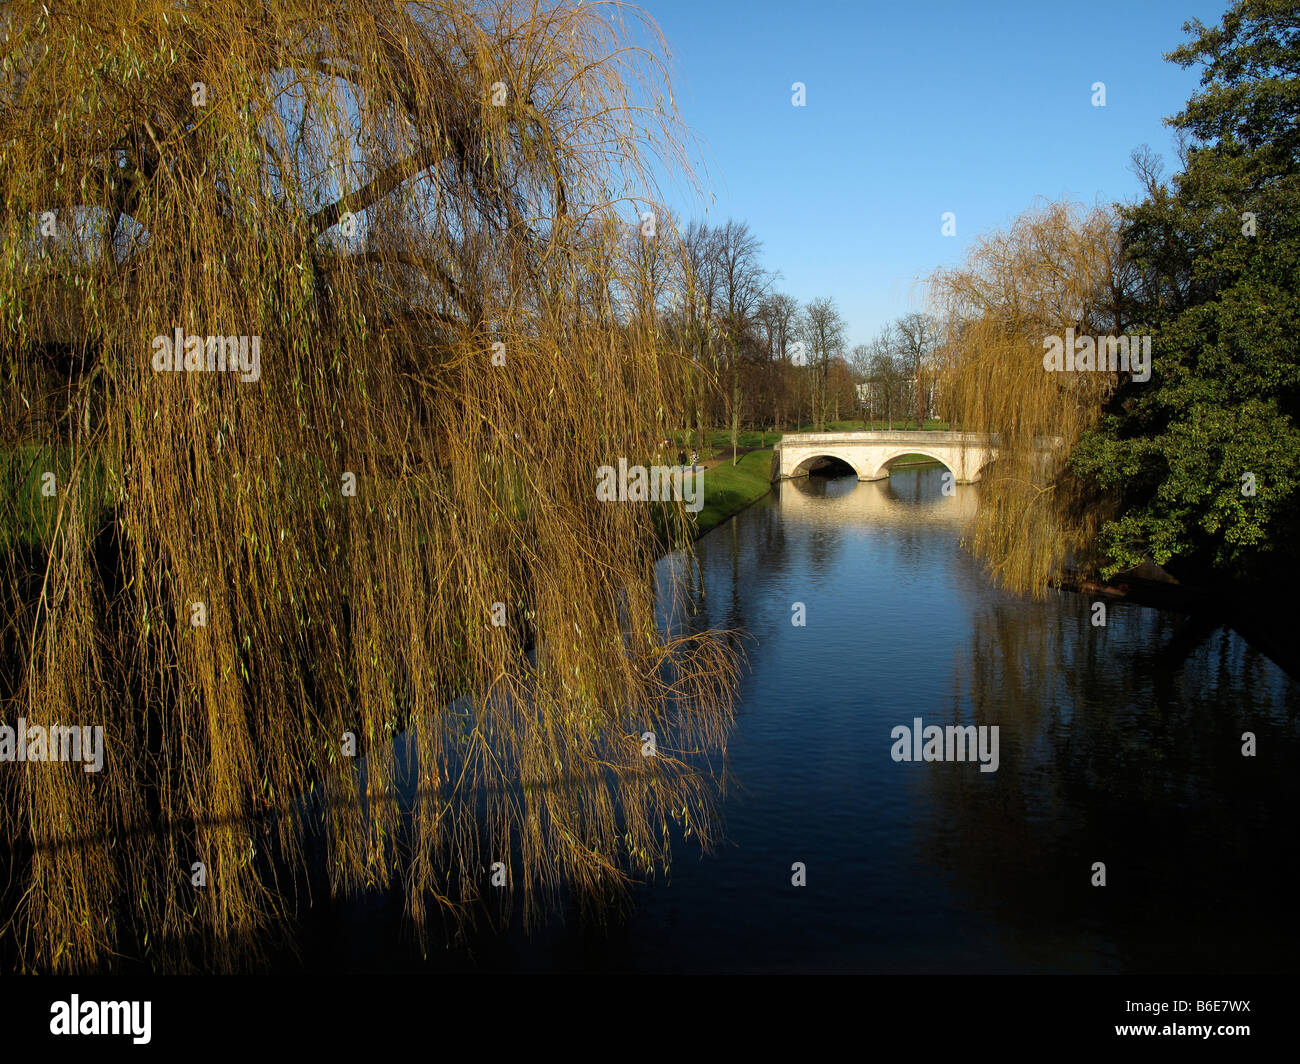 Cambridge bridge over the River Cam with Weeping Willows - Stock Image